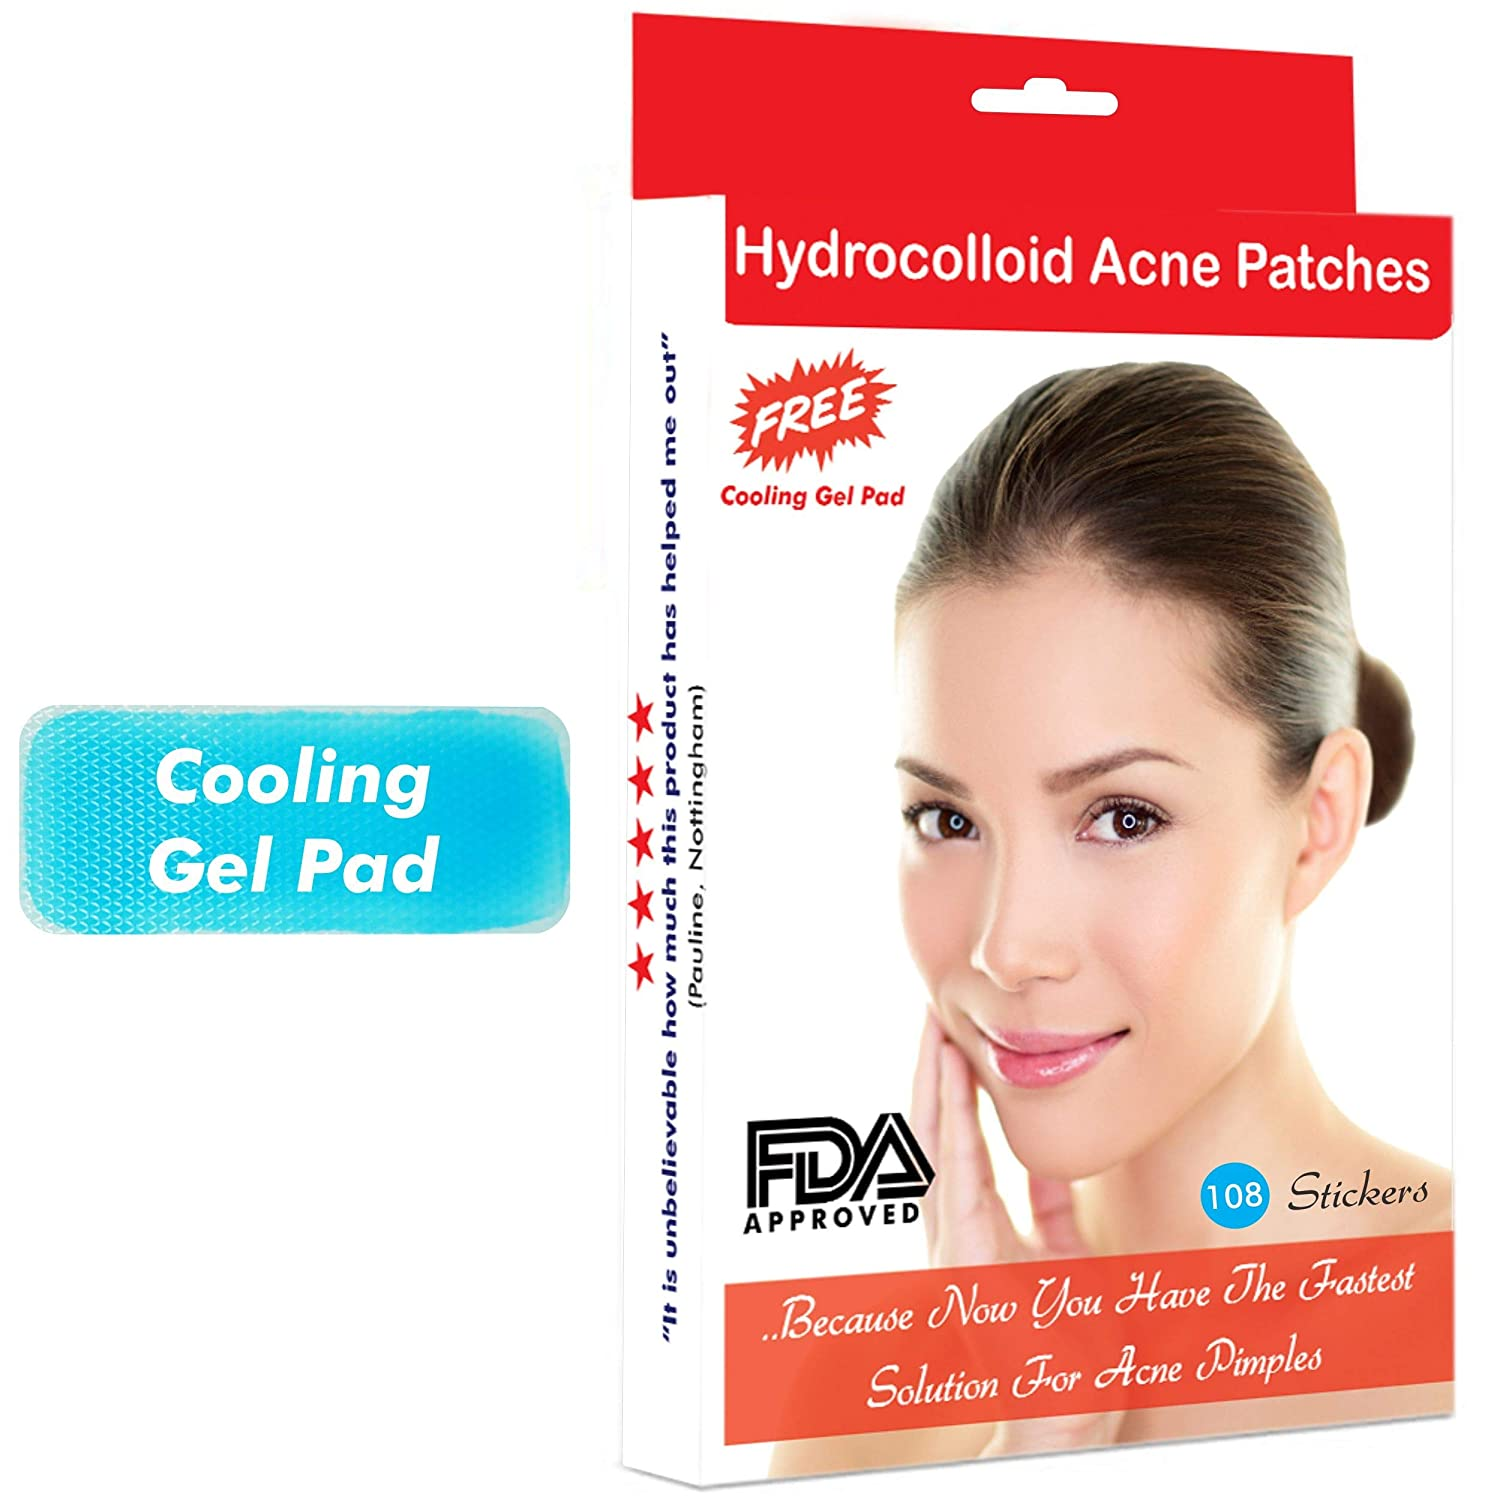 Treatment For Spot Pimples Blemishes Hydrocolloid Acne Patches 108 Patches